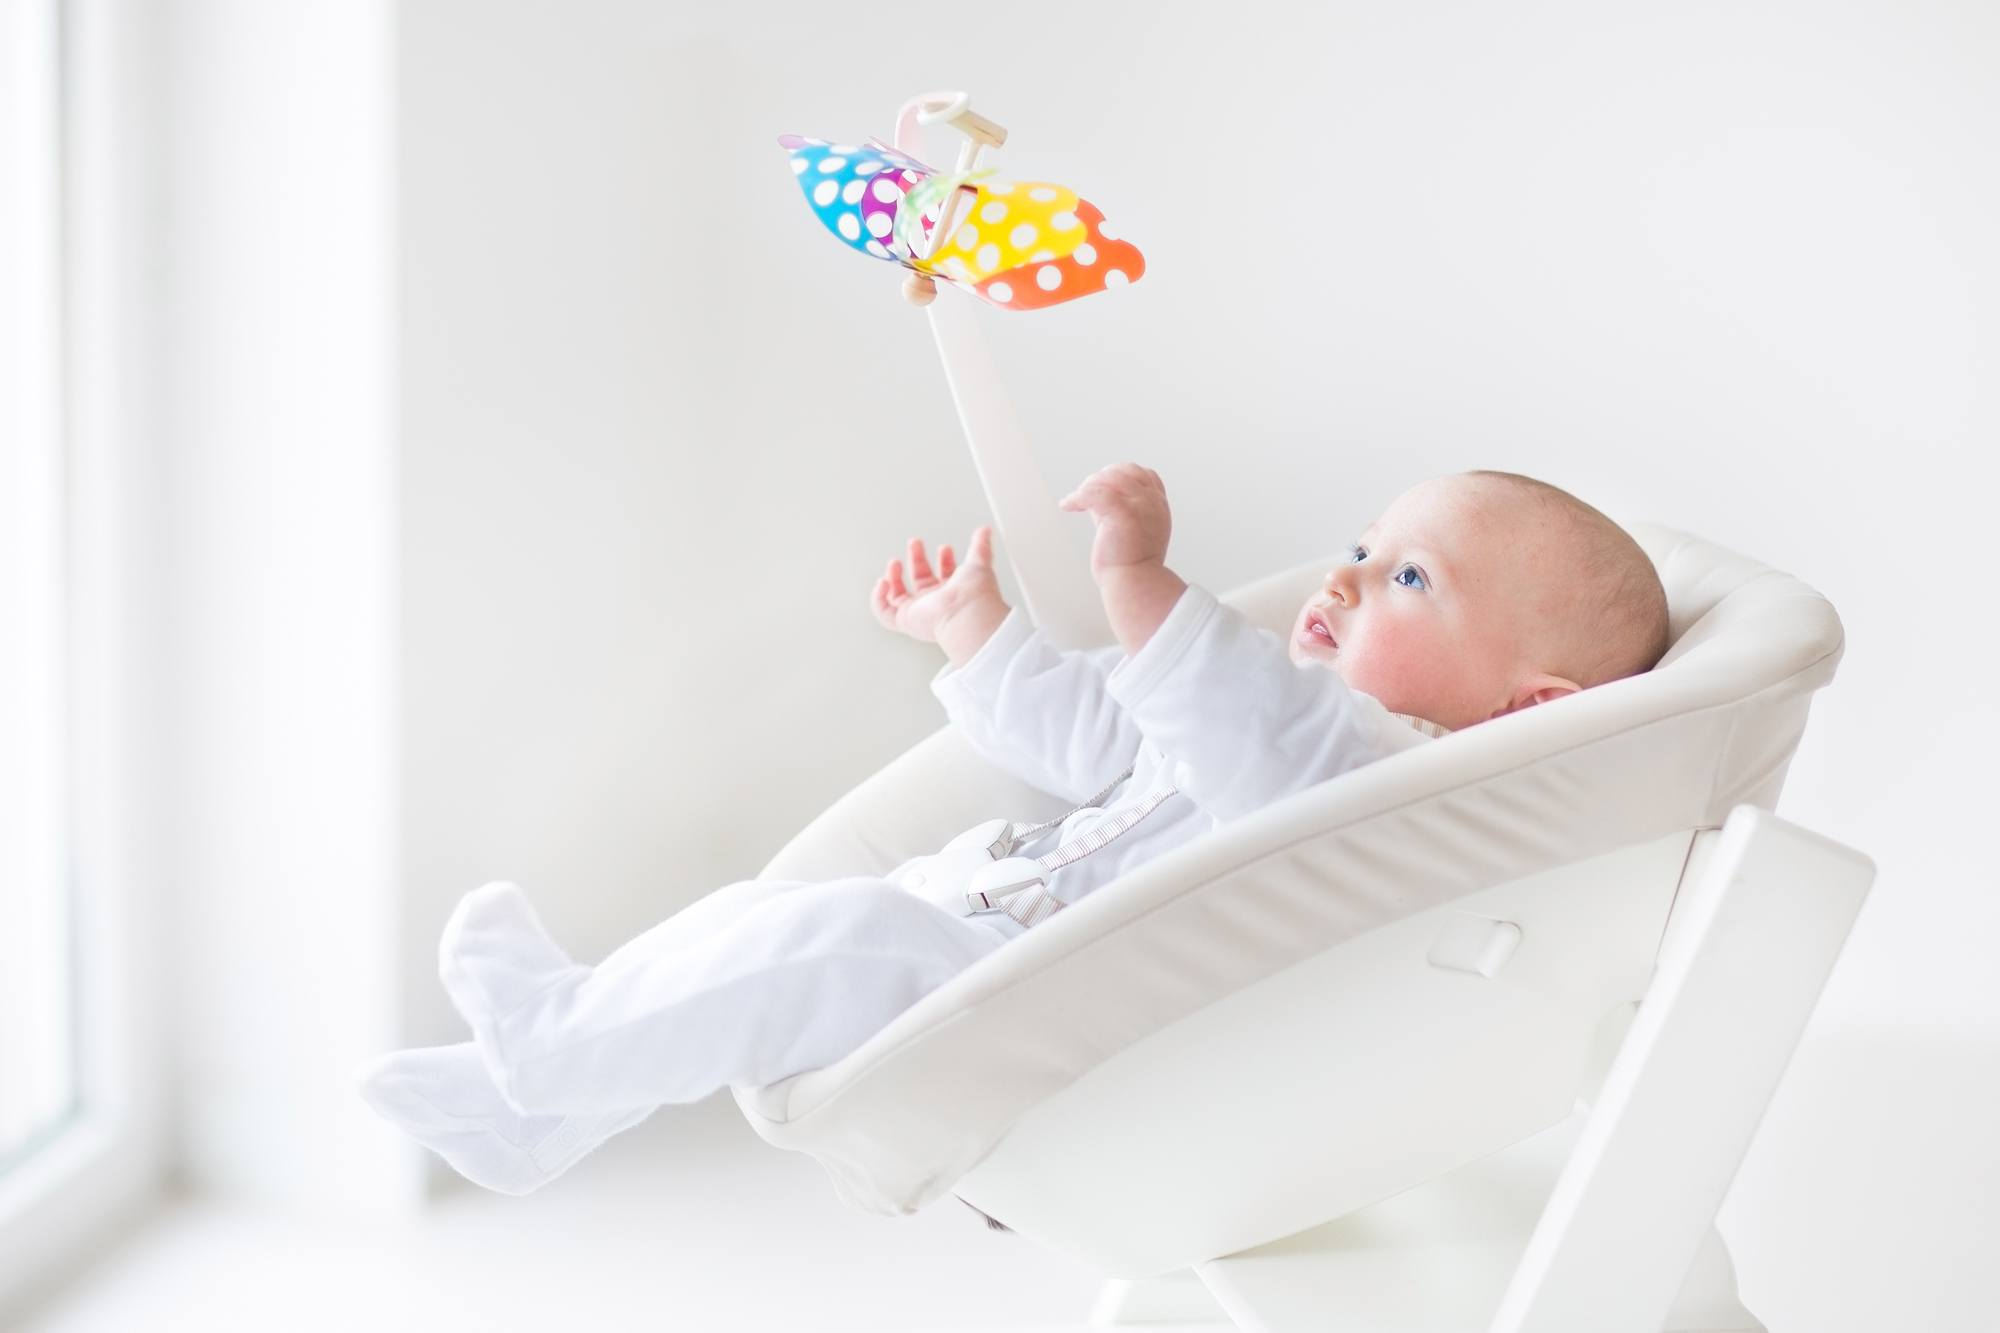 Rent baby and toddler travel gear like a bouncy seat for a more enjoyable vacation